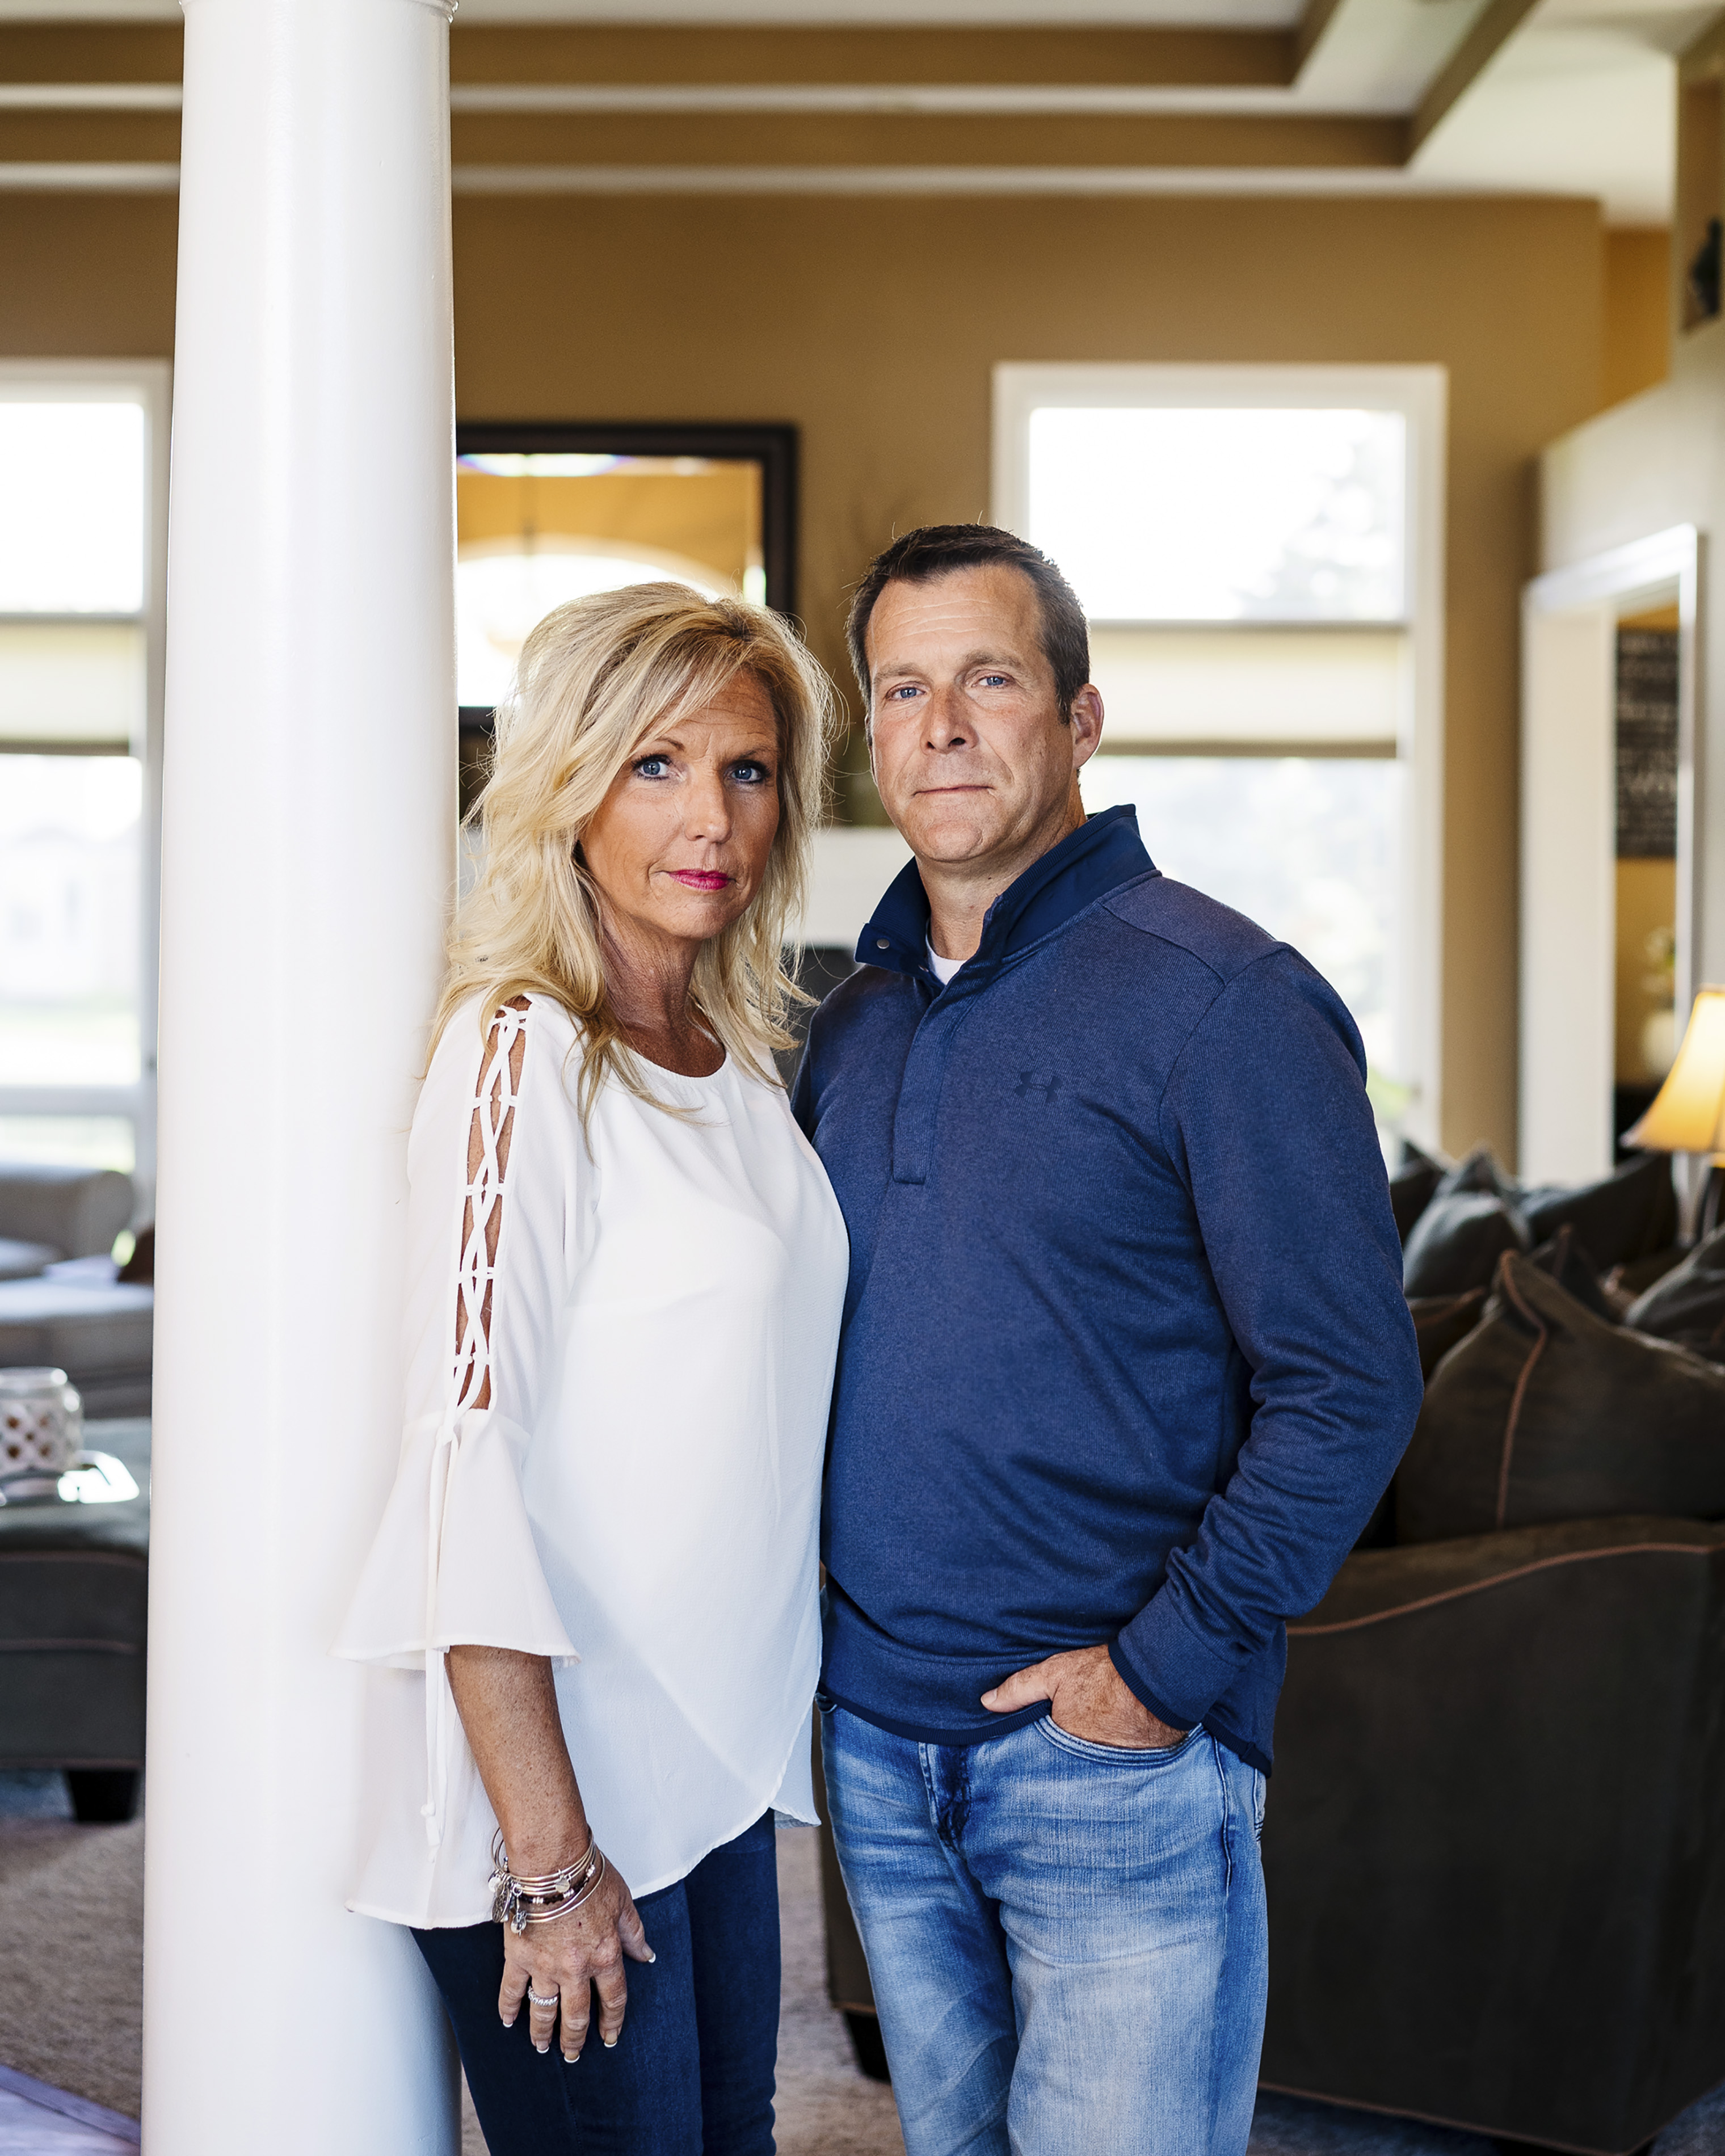 Katie Donovan and her husband, John, at their home in Macomb, Mich.